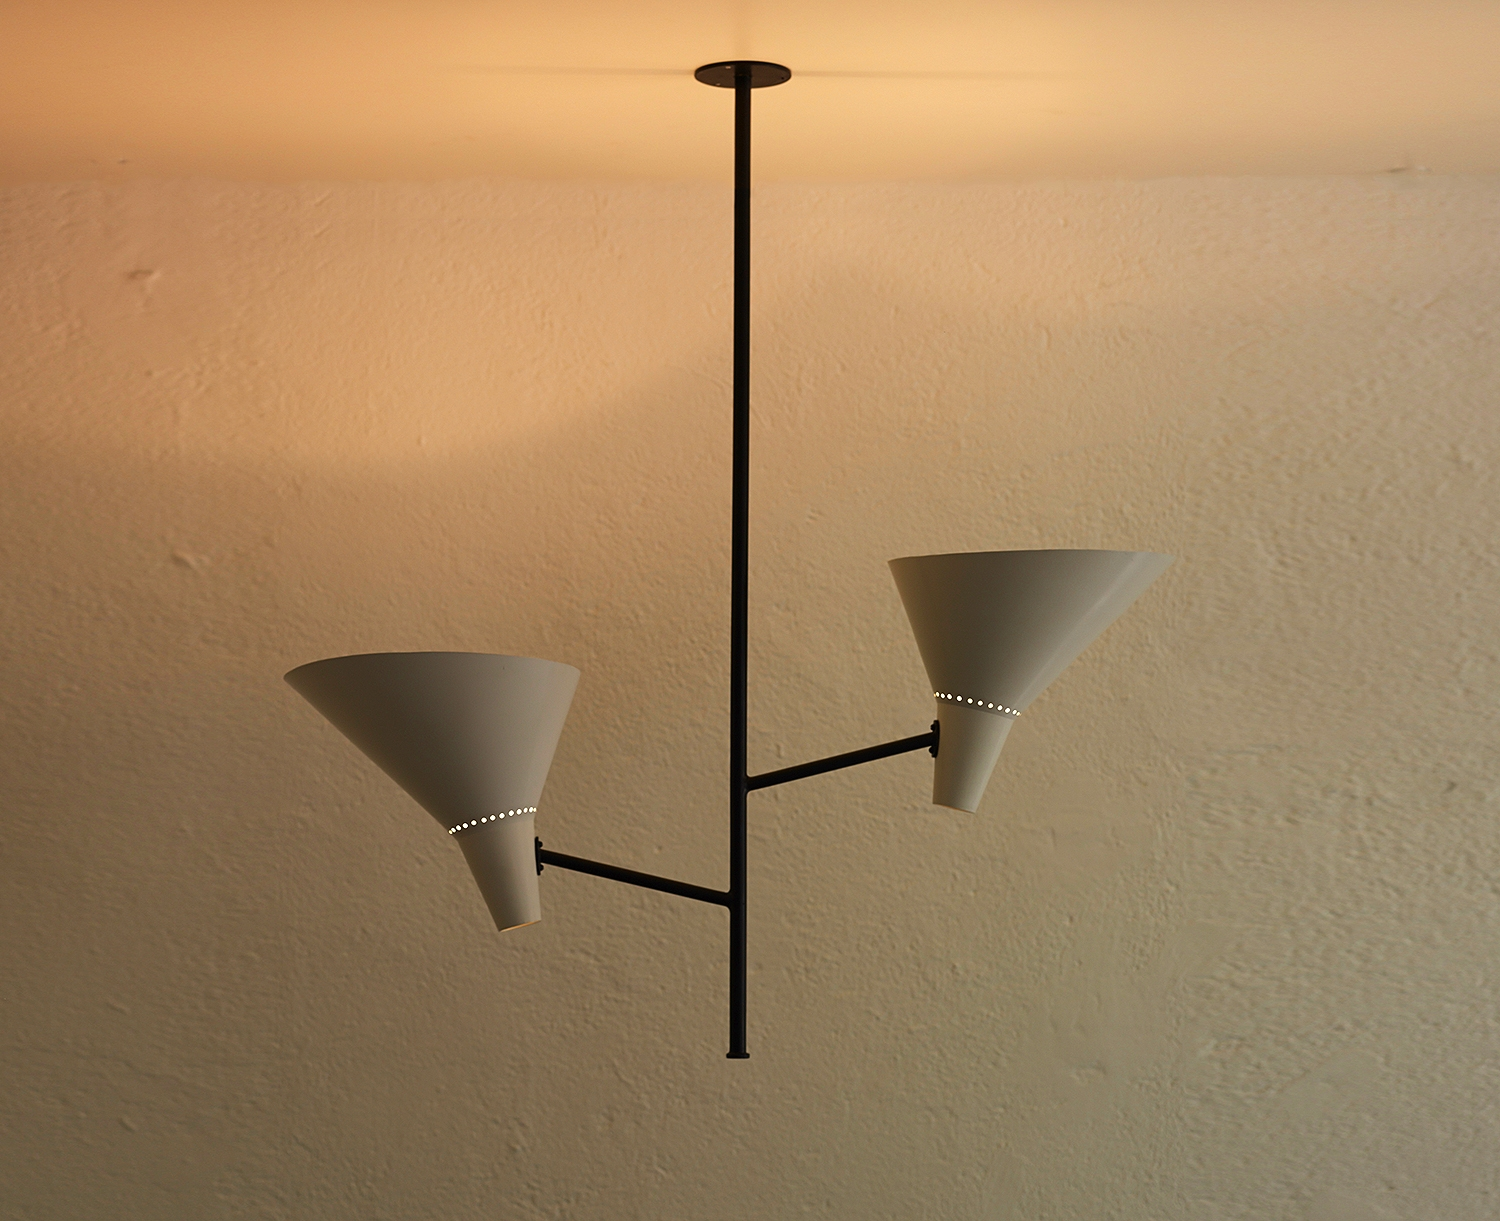 ceiling-lamp-by-prof-moor-for-bag-turgi-image-05